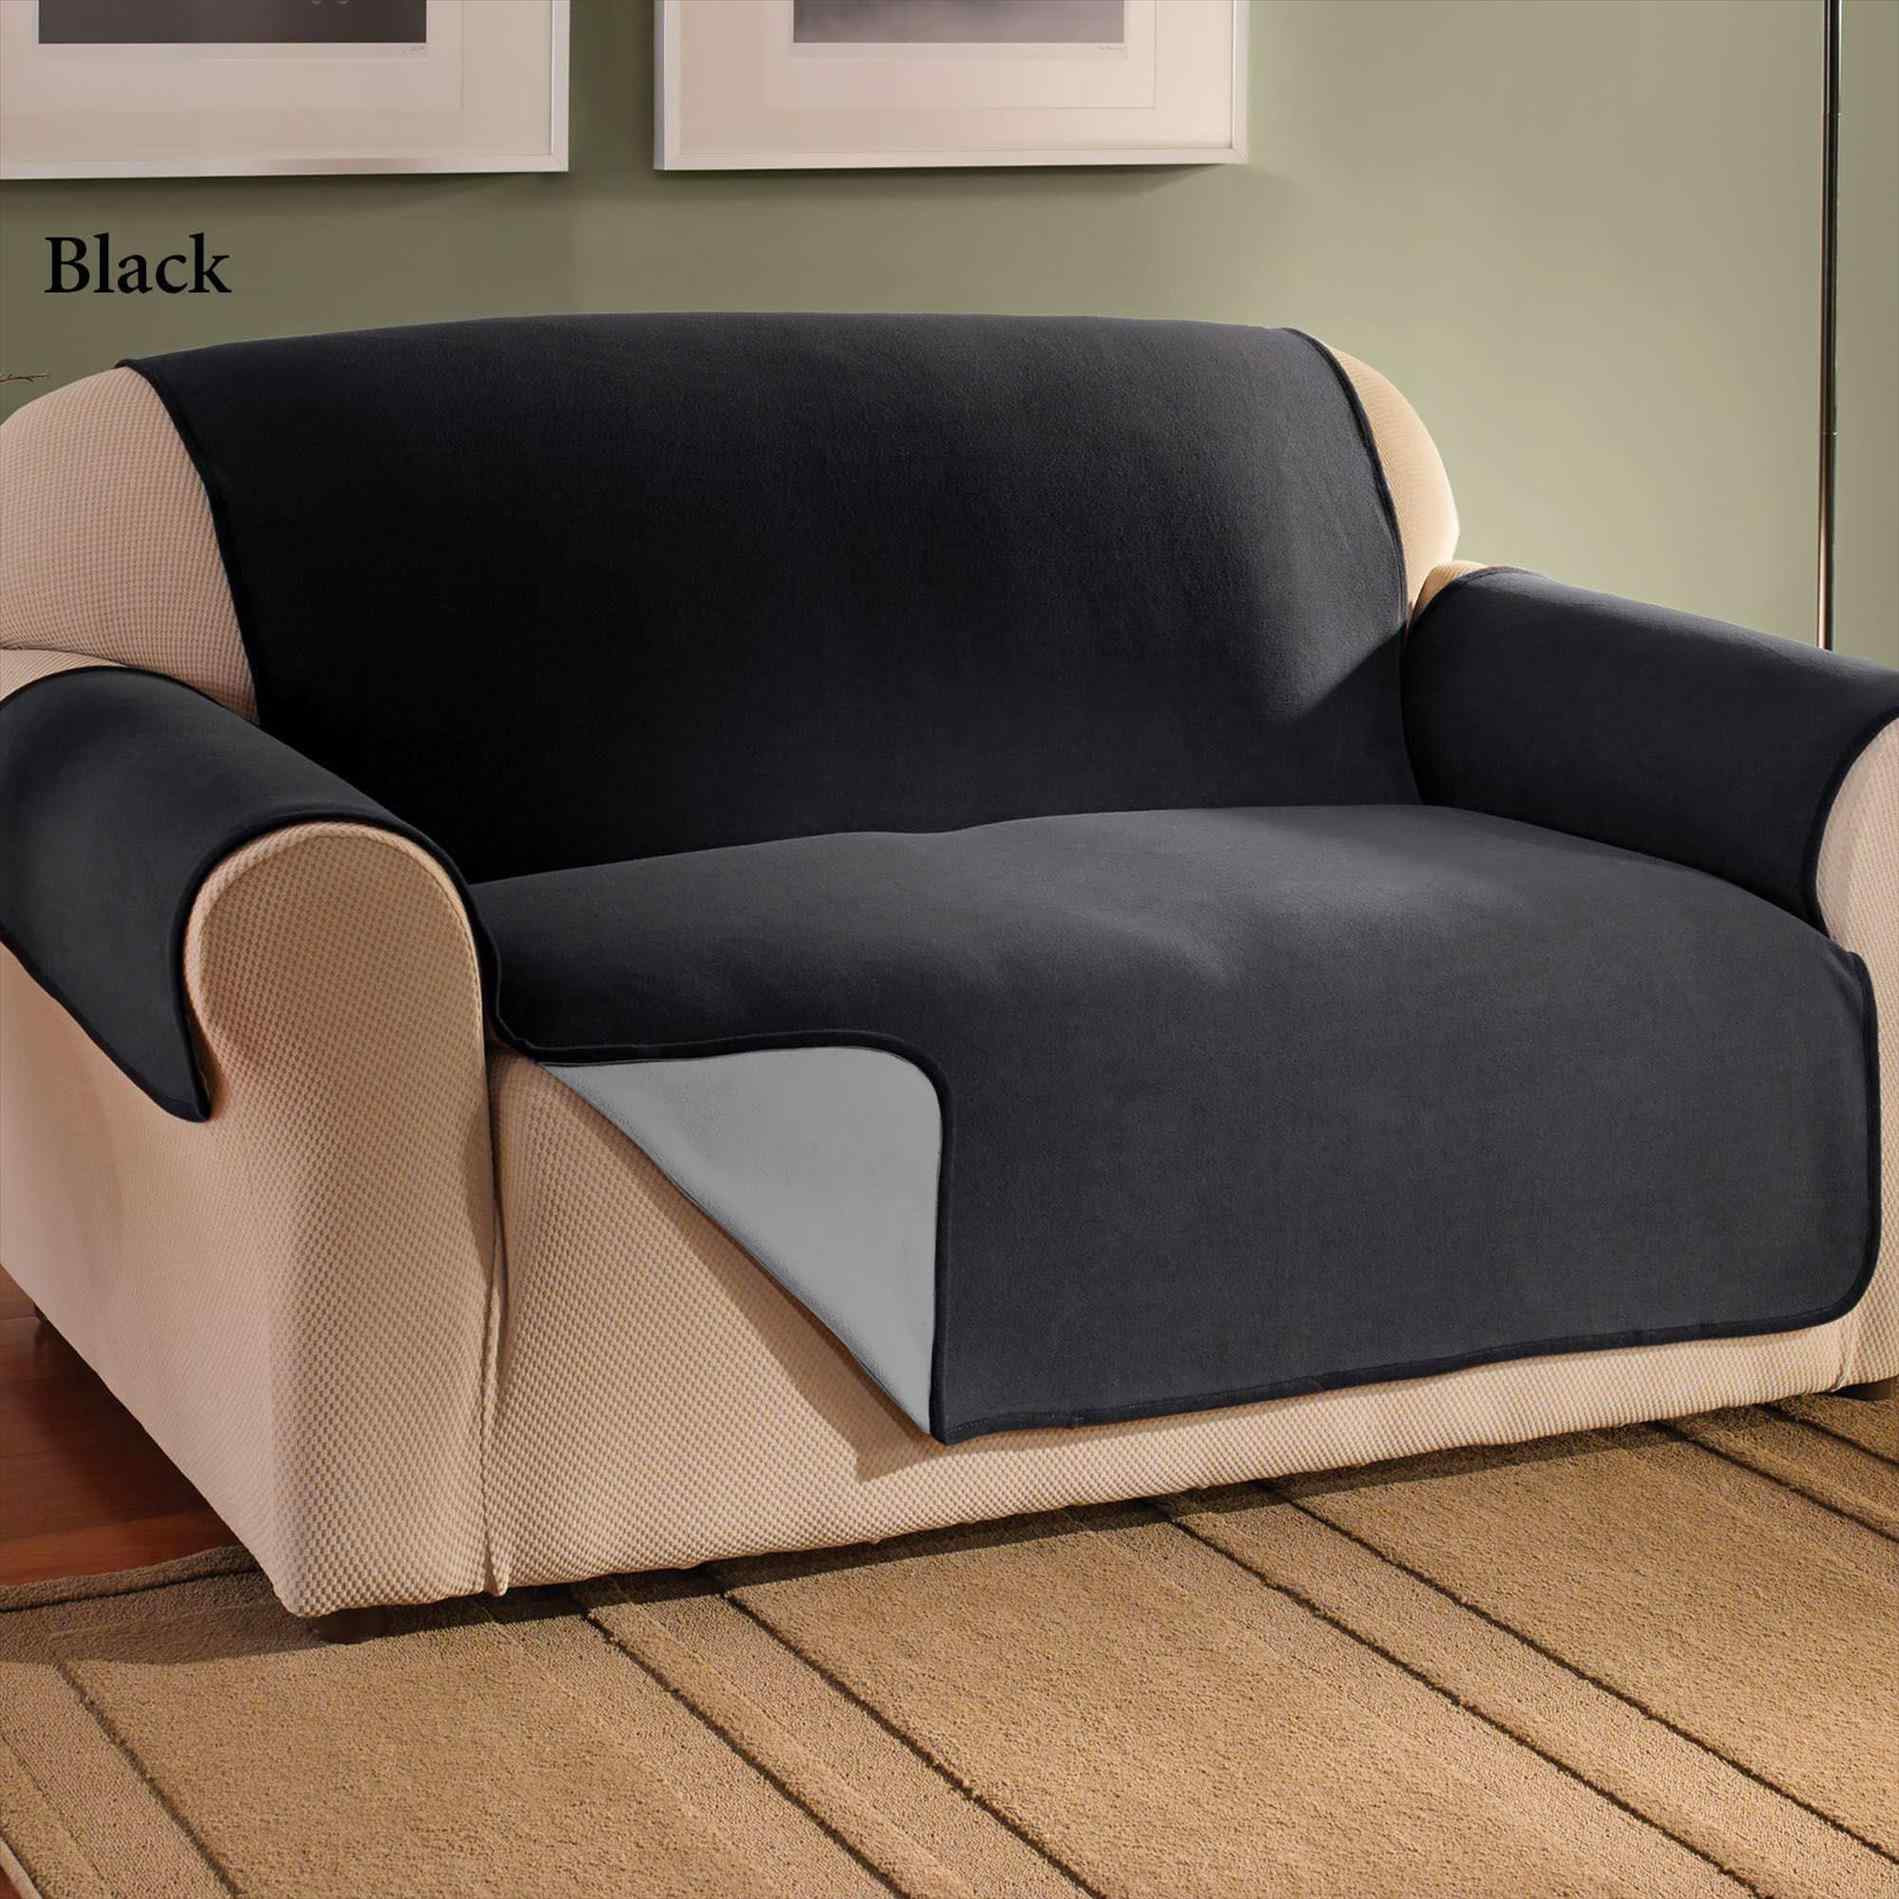 Best ideas about Can You Put A Slipcover On A Reclining Sofa . Save or Pin Girl Rhmanualbiz Teens Pink And Gold Girls Room Room Now.